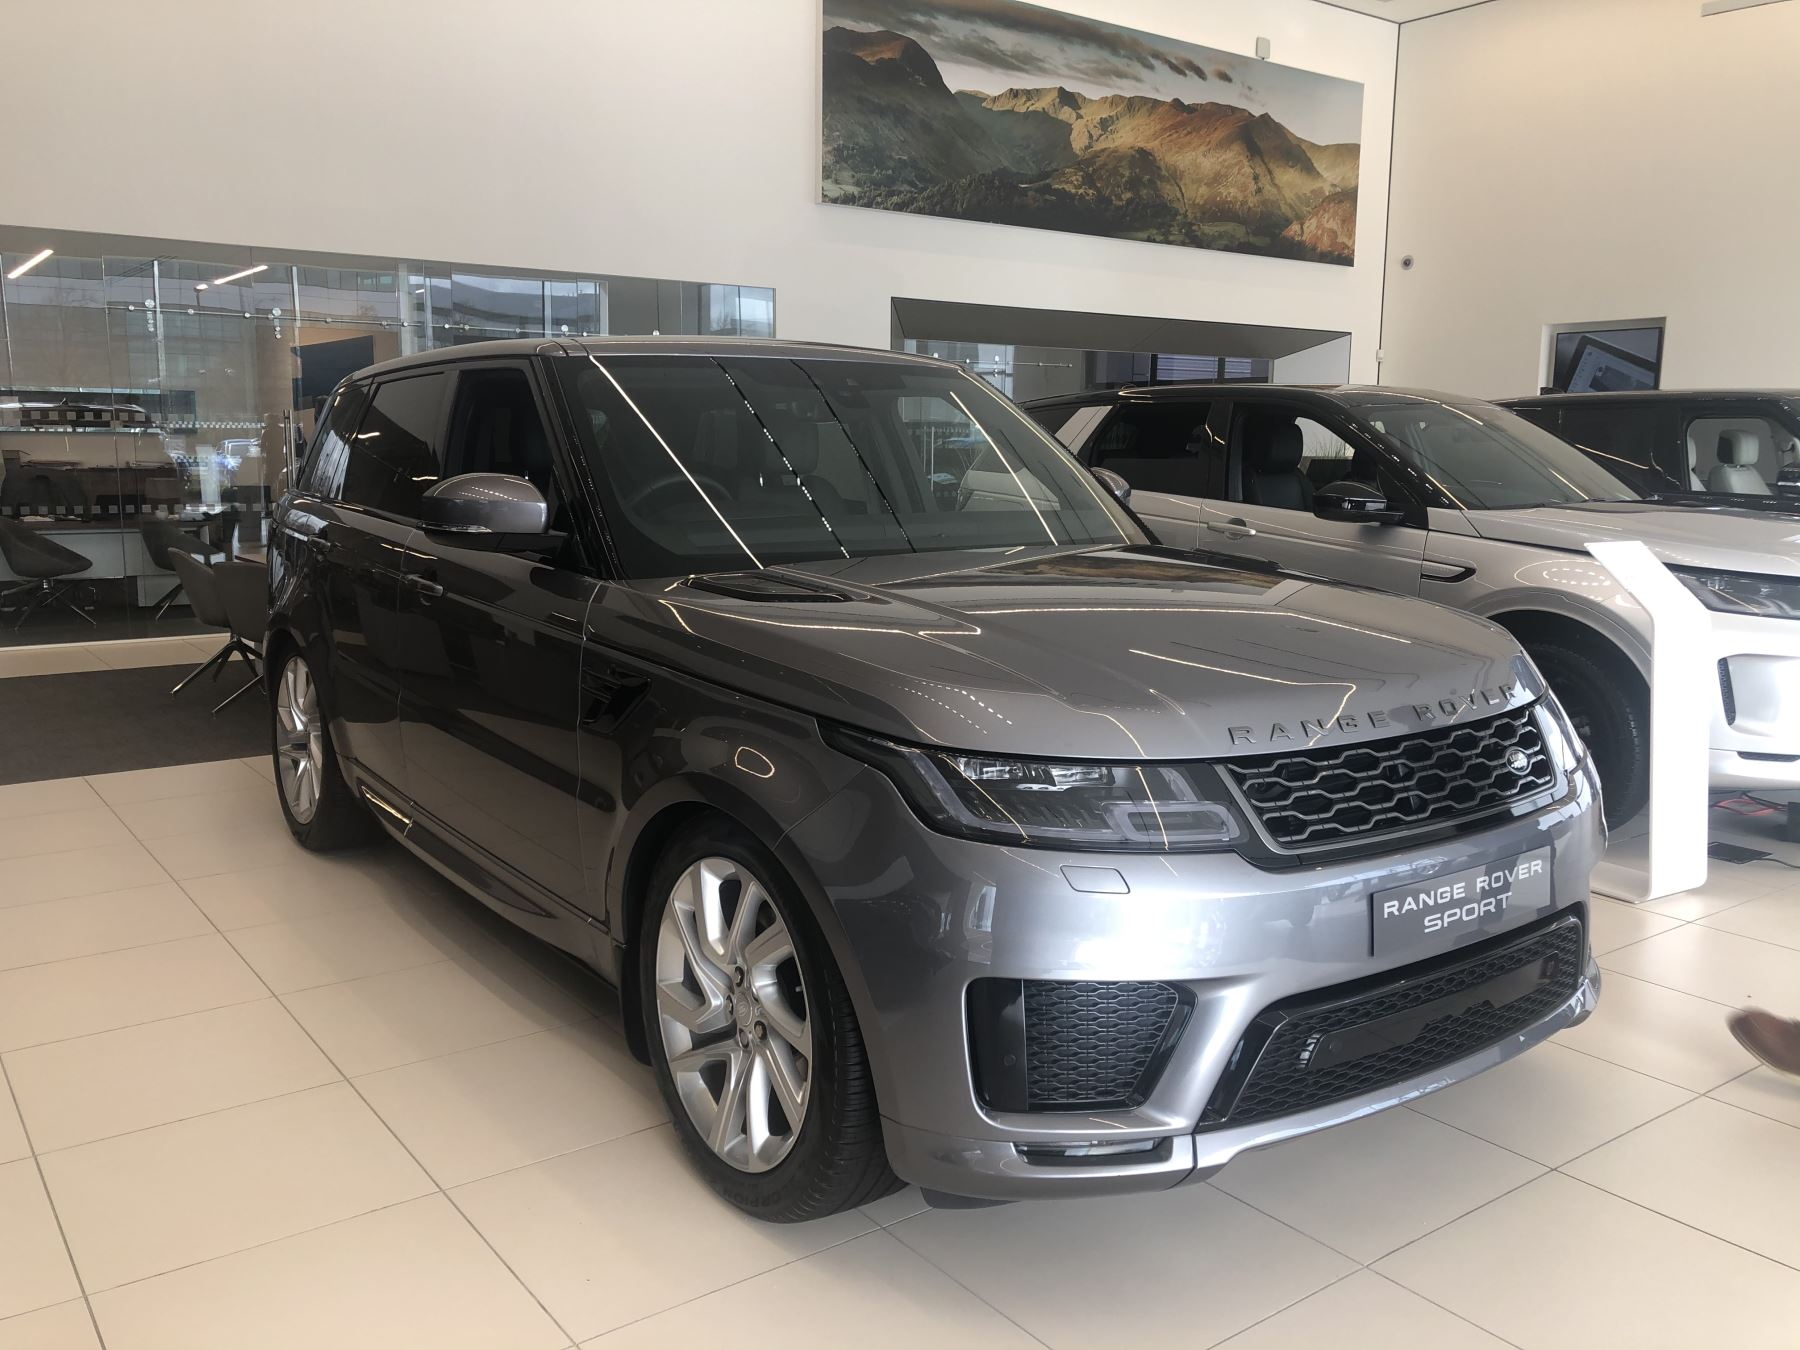 Land Rover Range Rover Sport 3.0 SDV6 HSE Dynamic Diesel Automatic 5 door Estate (18MY)